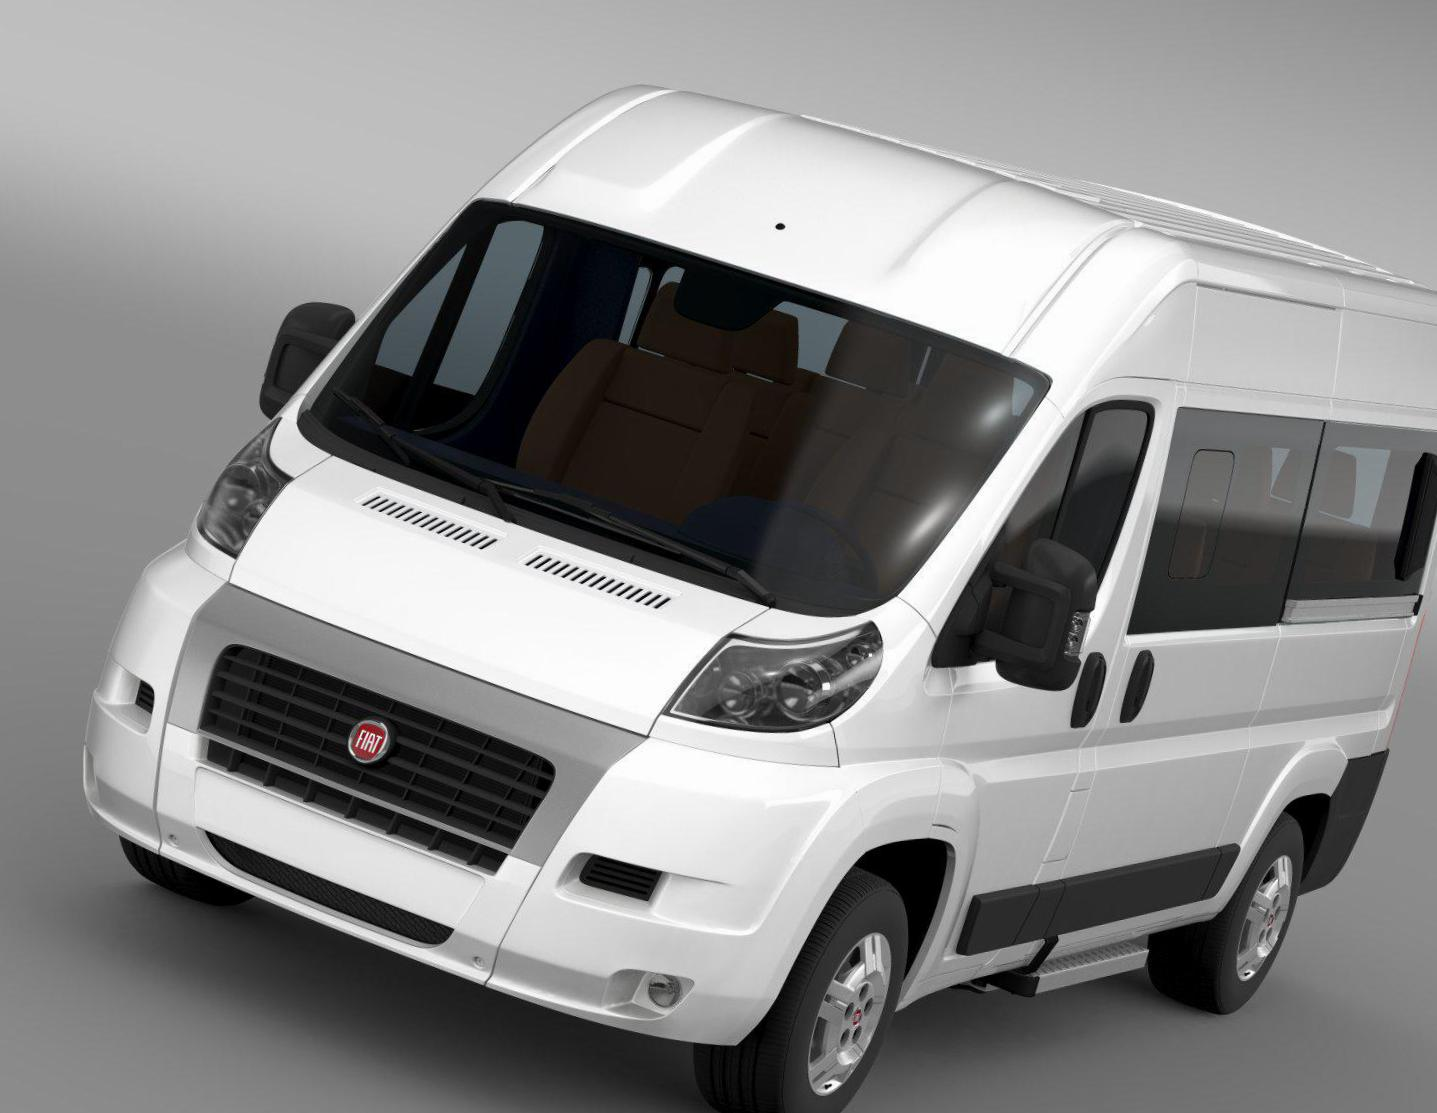 fiat ducato panorama photos and specs photo ducato panorama fiat cost and 22 perfect photos of. Black Bedroom Furniture Sets. Home Design Ideas